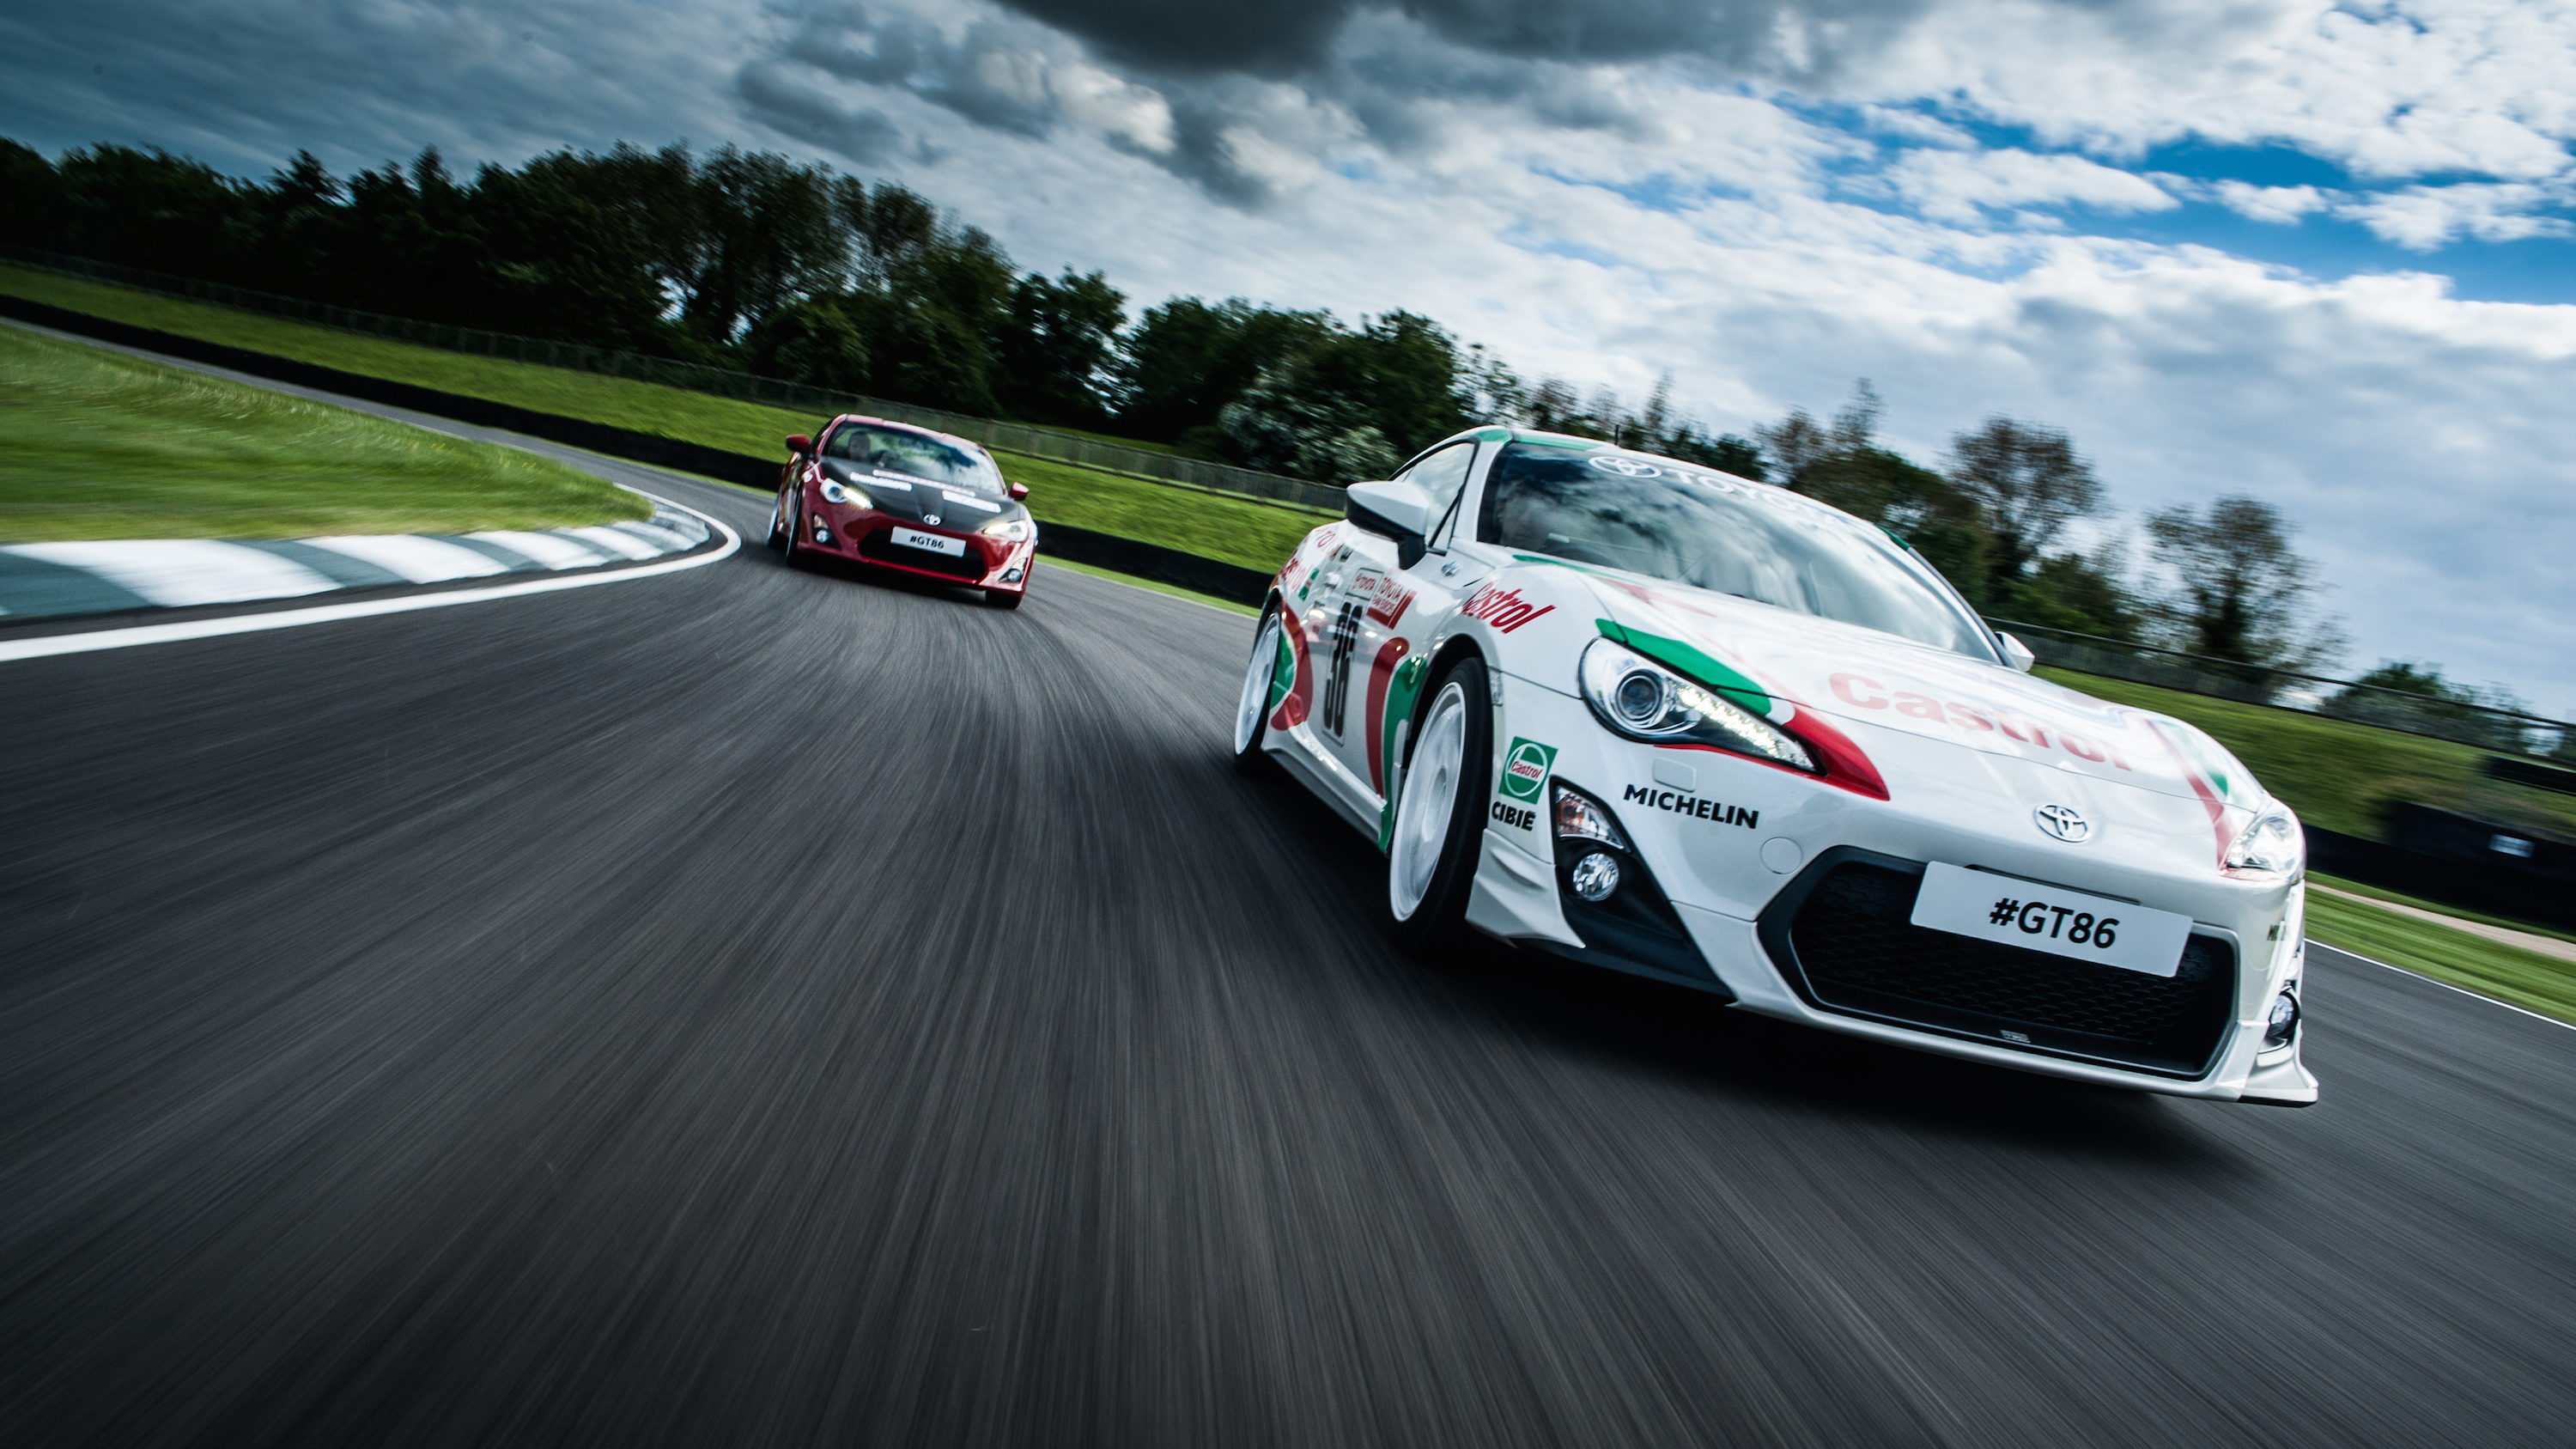 GT86-classic-livery-dynamic-2